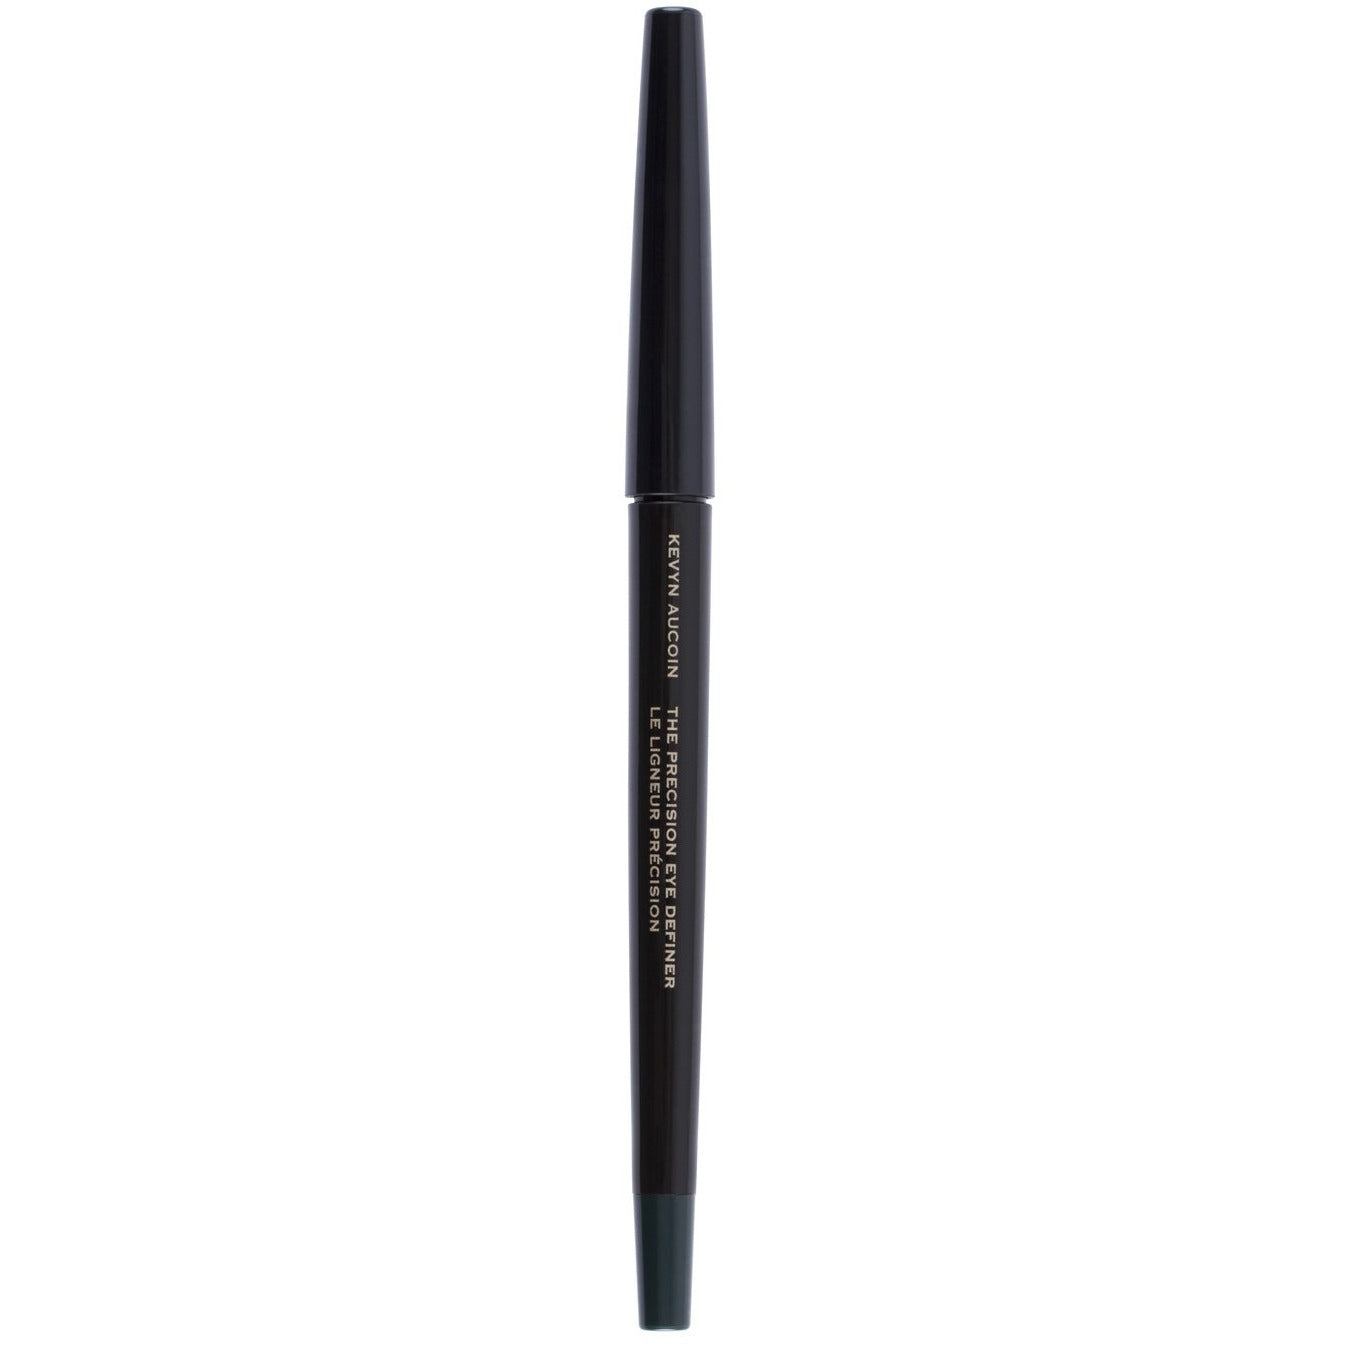 The Precision Eye Definer - Evergreen